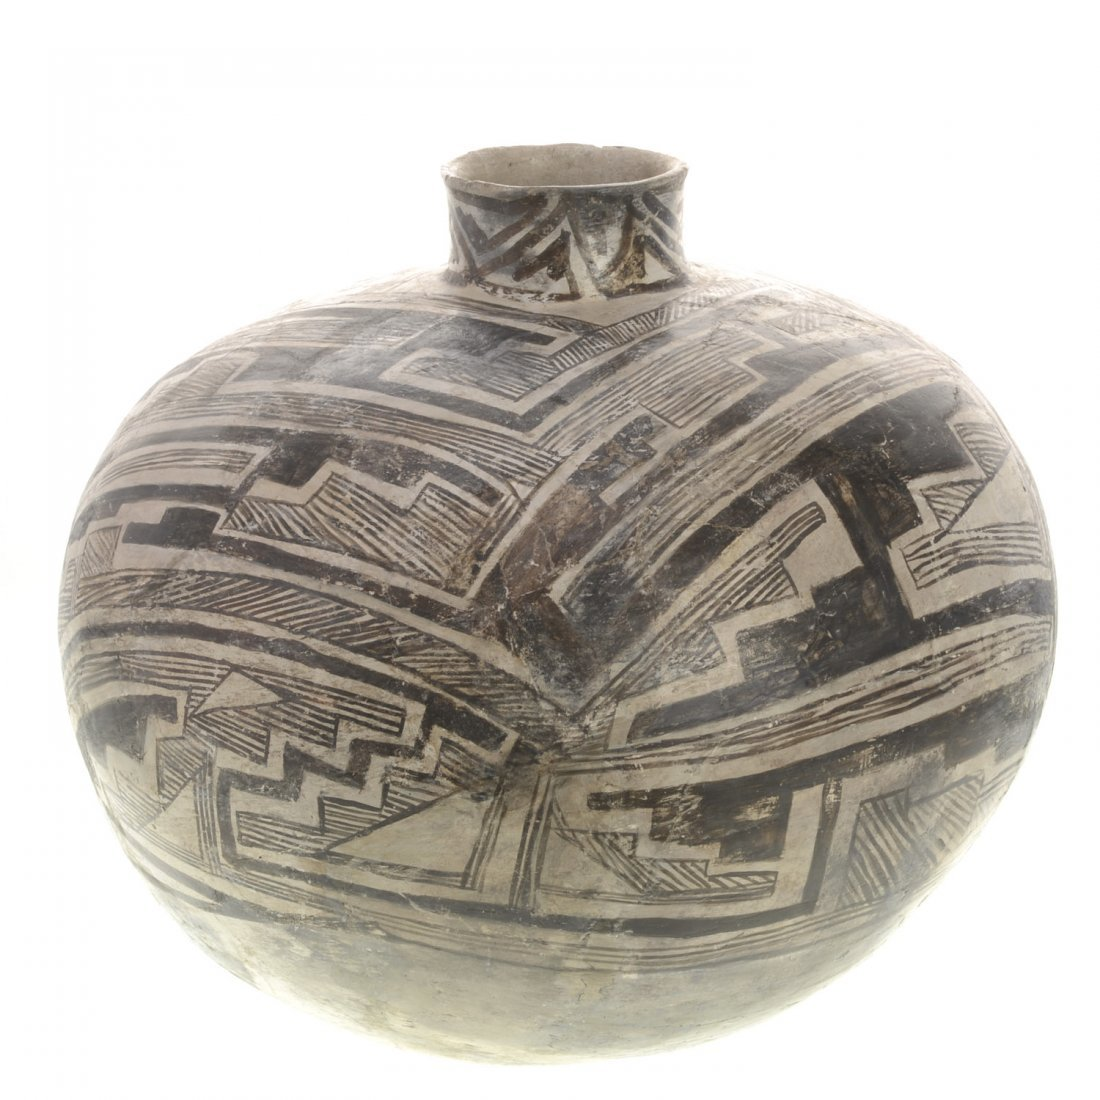 A Native American wide-bellied pottery vessel